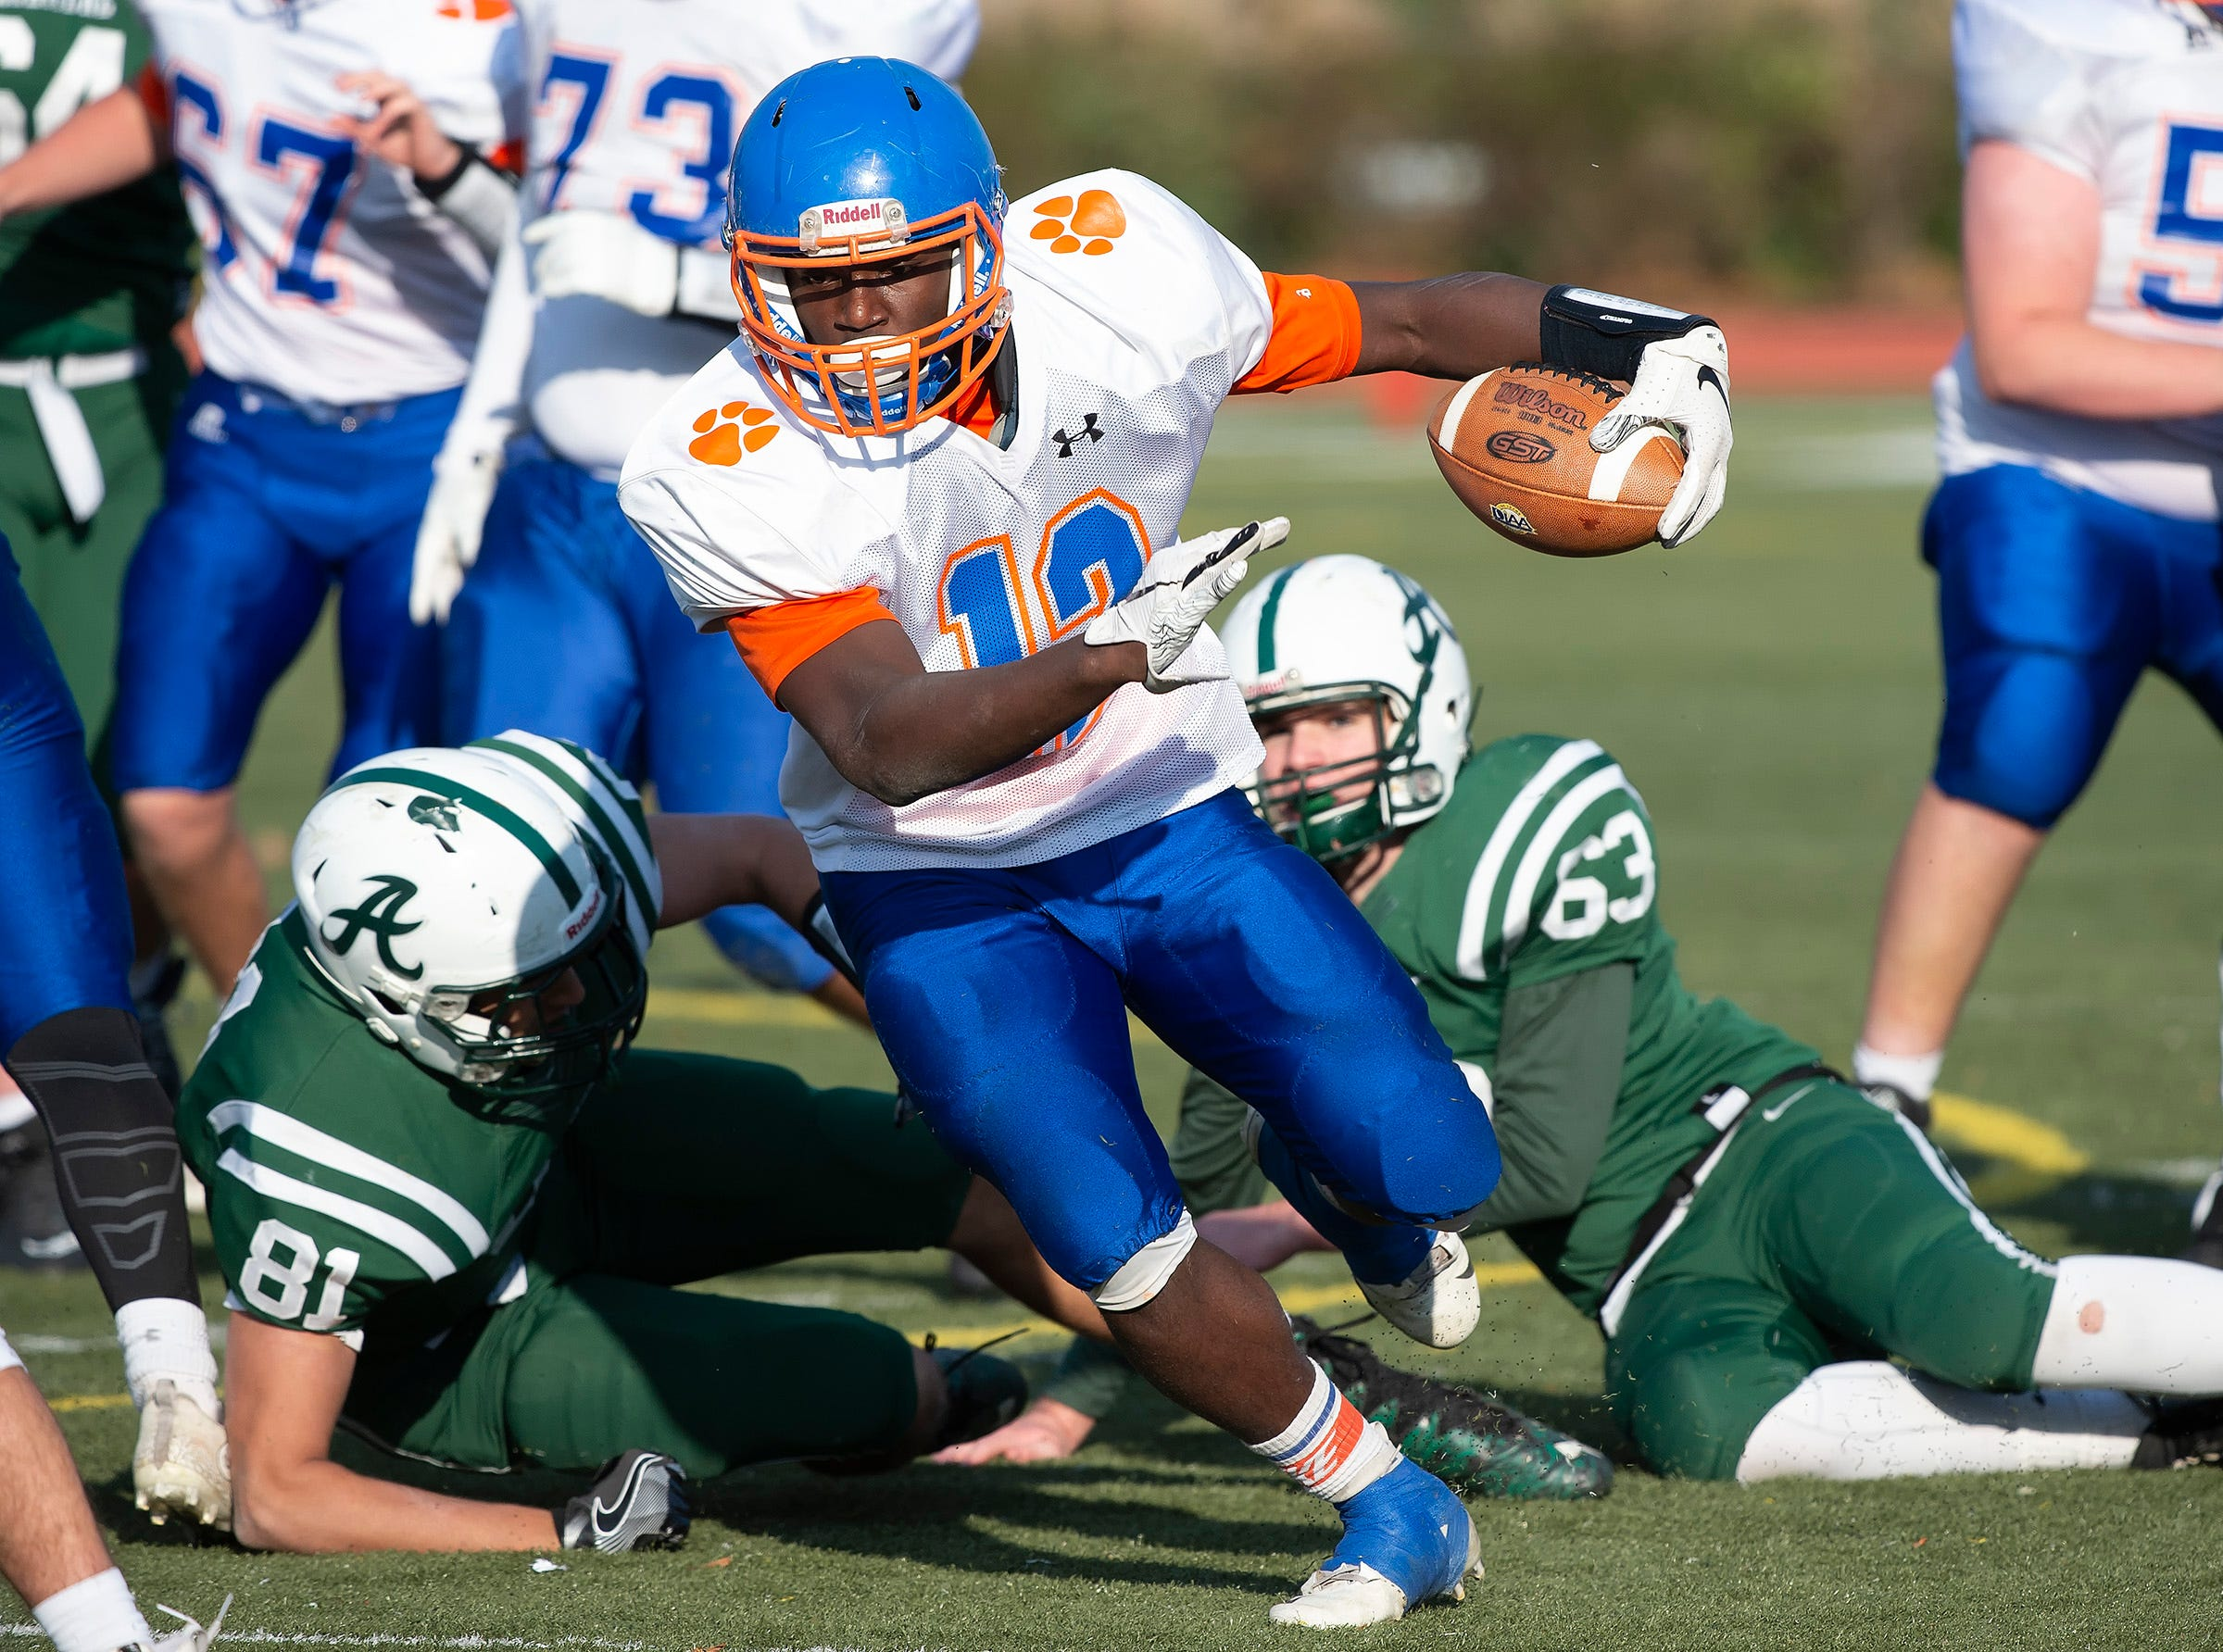 Delmar's Te'Shawn Dennard (12) breaks tackle attempt in their 38-10 playoff win against Archmere.